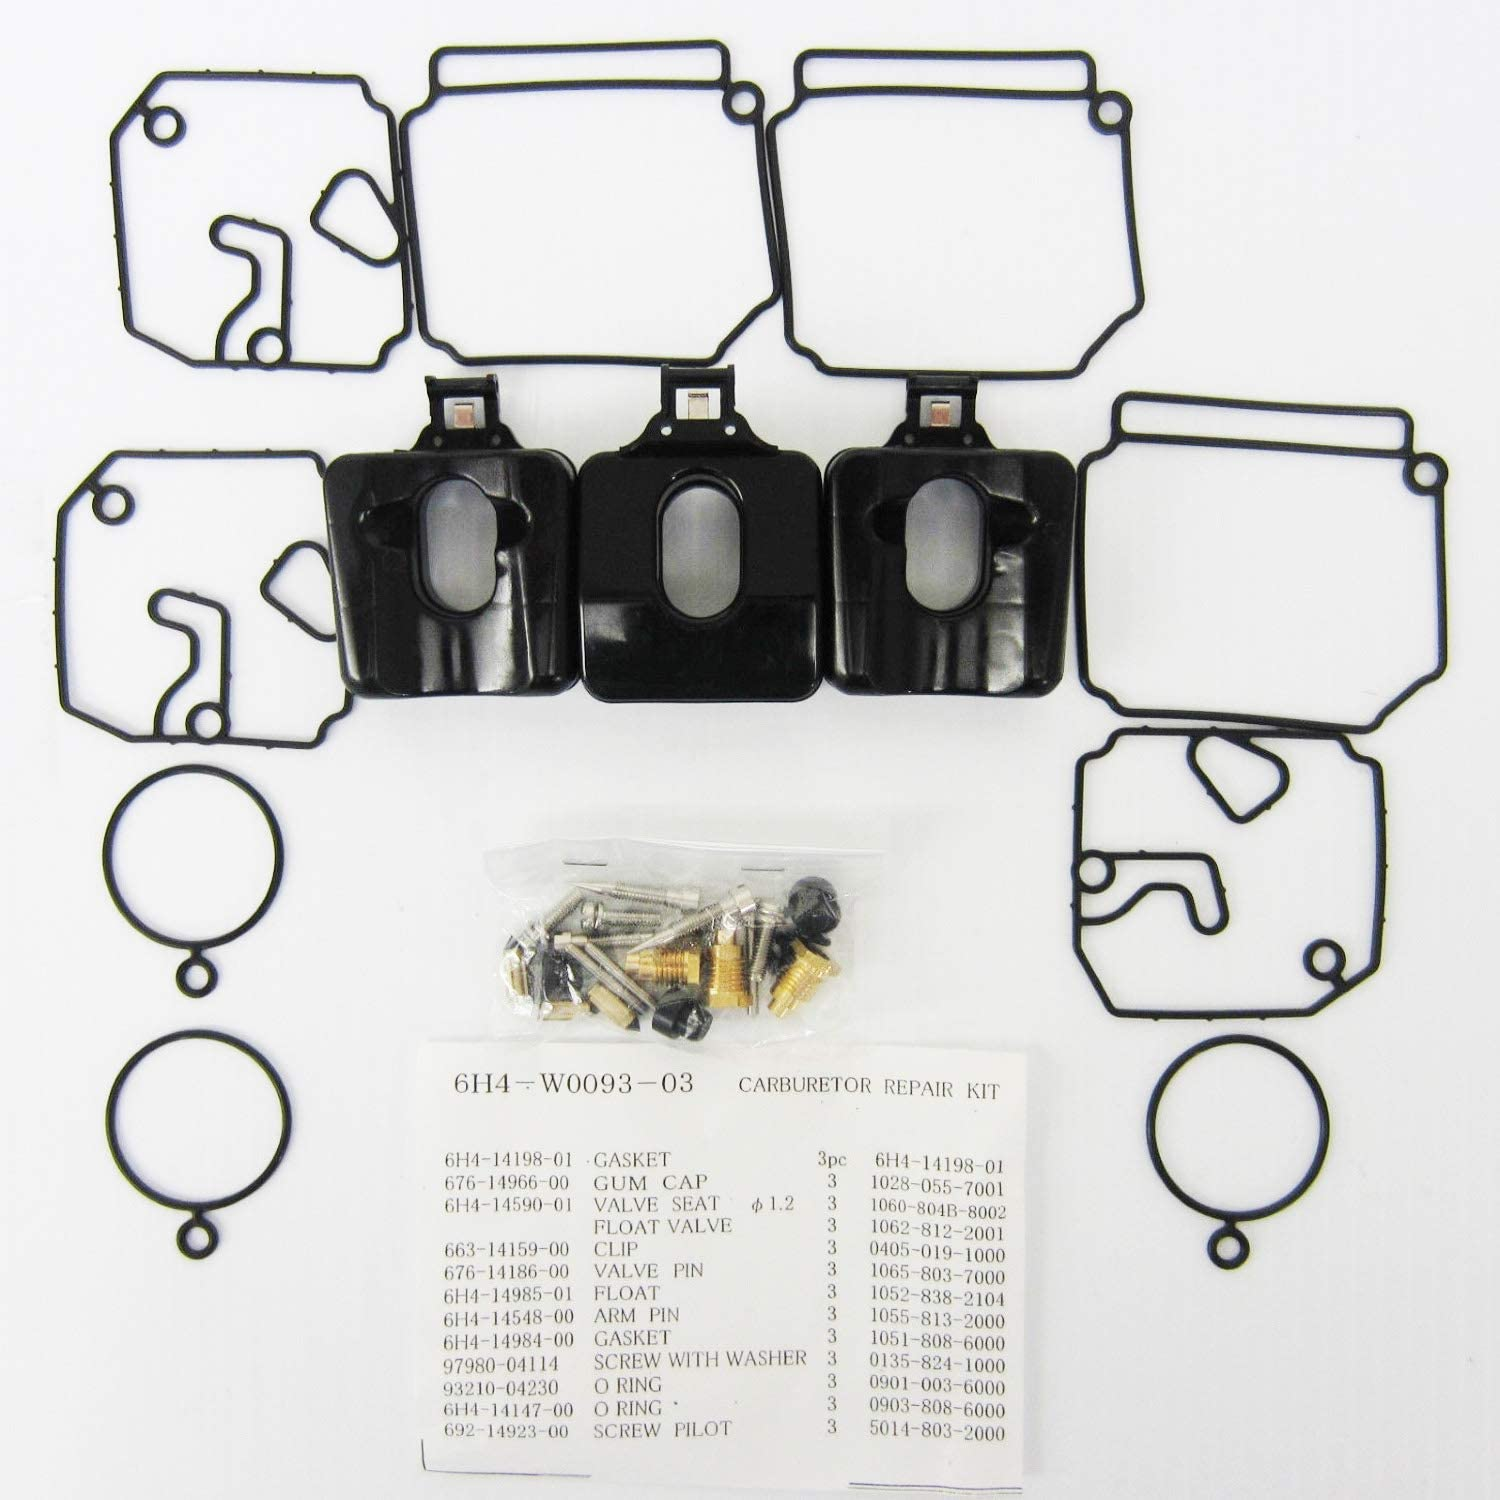 OEM Yamaha 40-50 2-stroke Outboard Carburetor Repair Kit 6H4-W0093-03-00